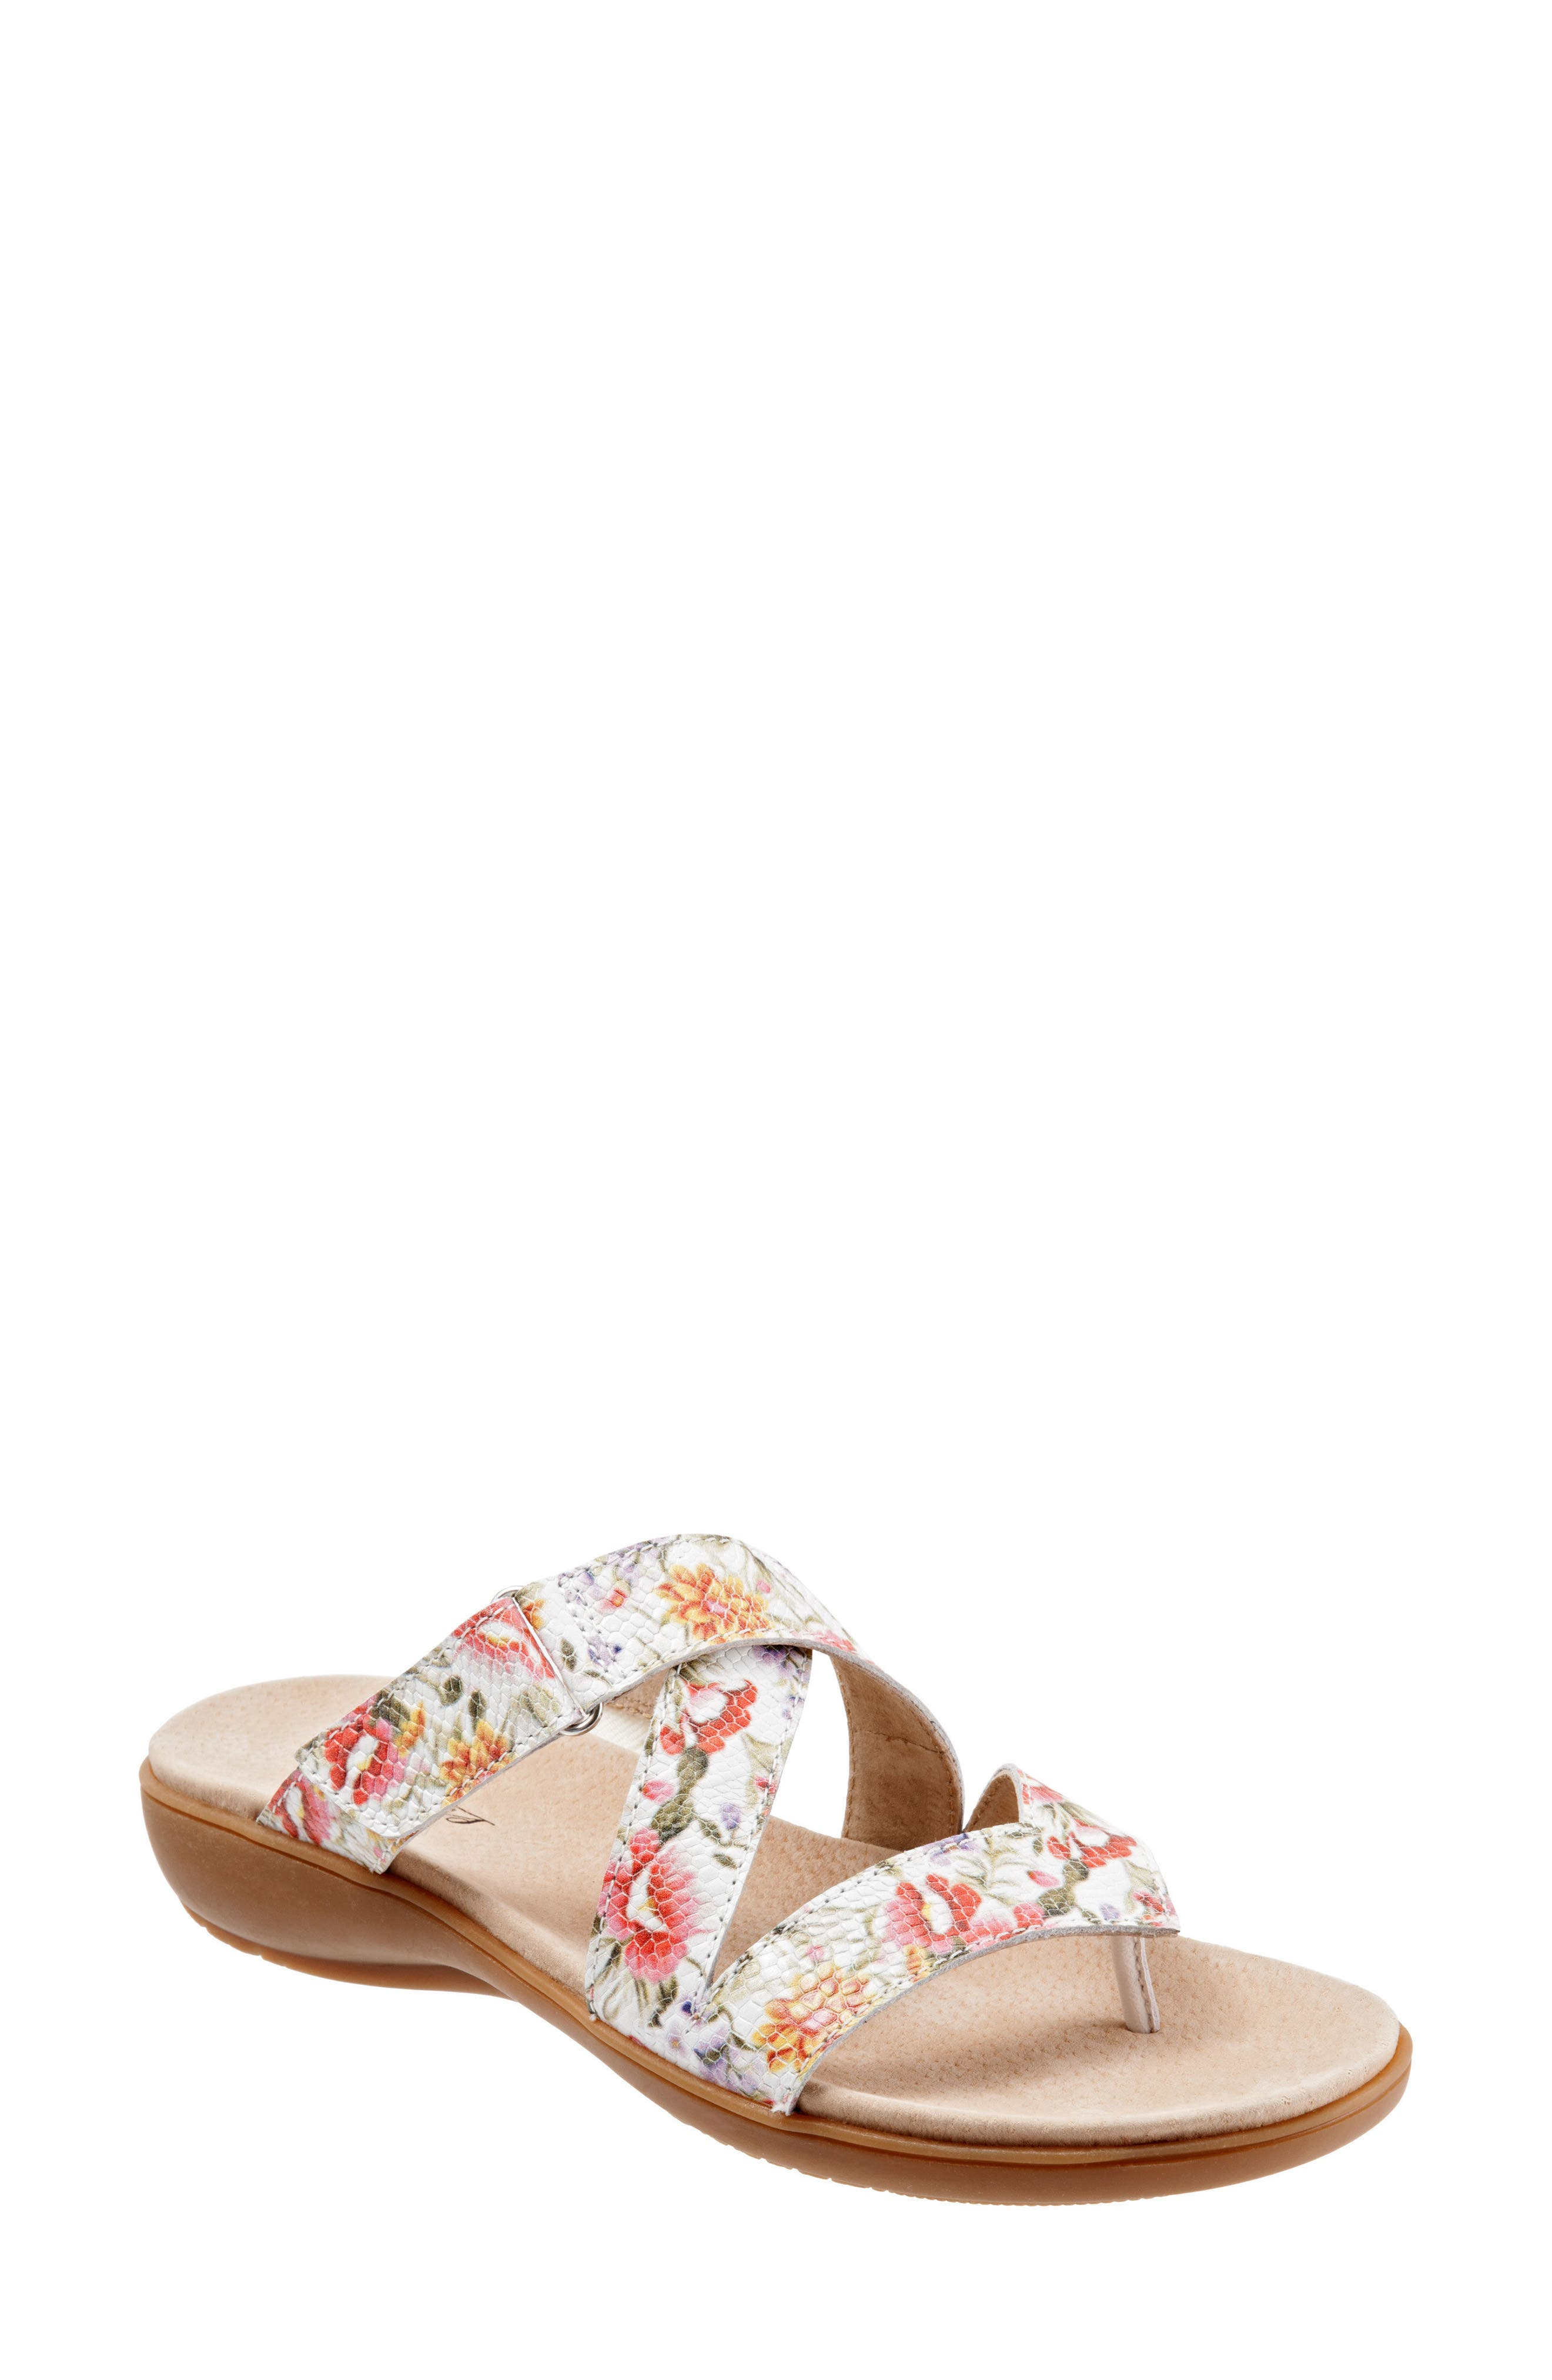 Komet Thong Sandal,                             Main thumbnail 1, color,                             Off White Floral Leather